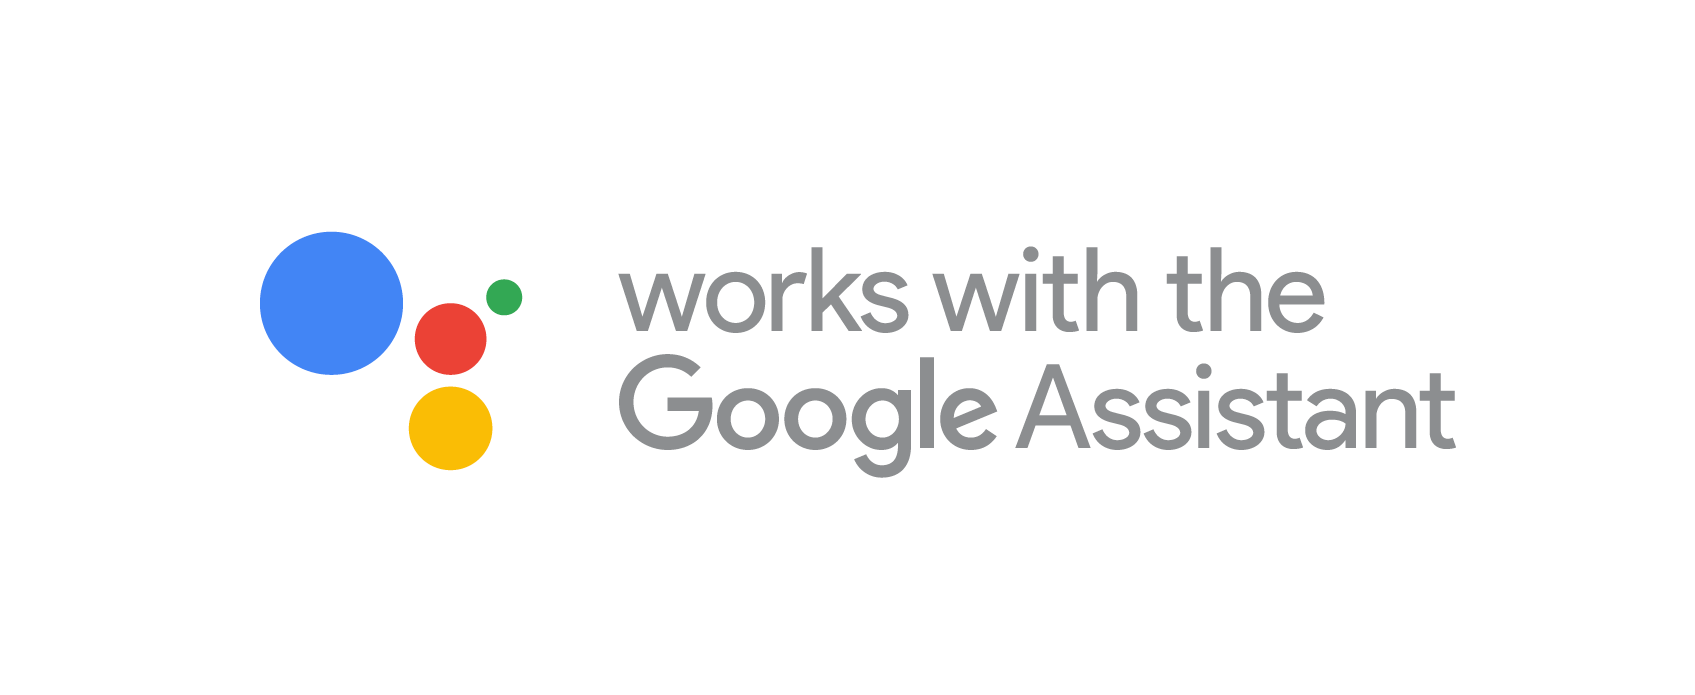 Works with Google Assistant badge